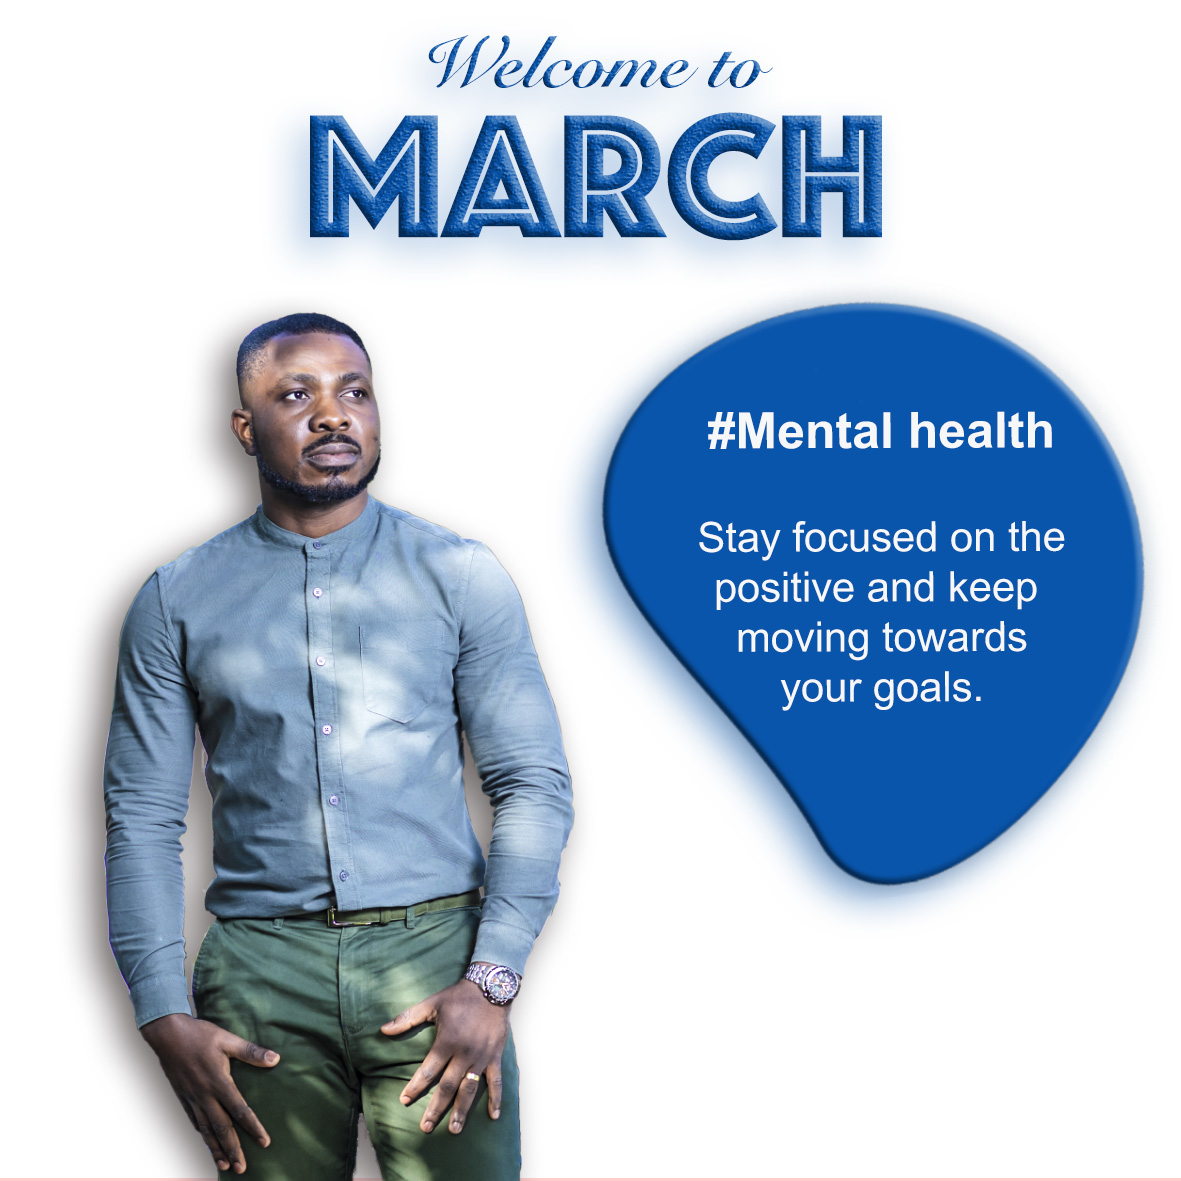 Happy new month believers🤗 Remember to stay focused and keep your eyes on your goals.  #mentalhealth #totalman